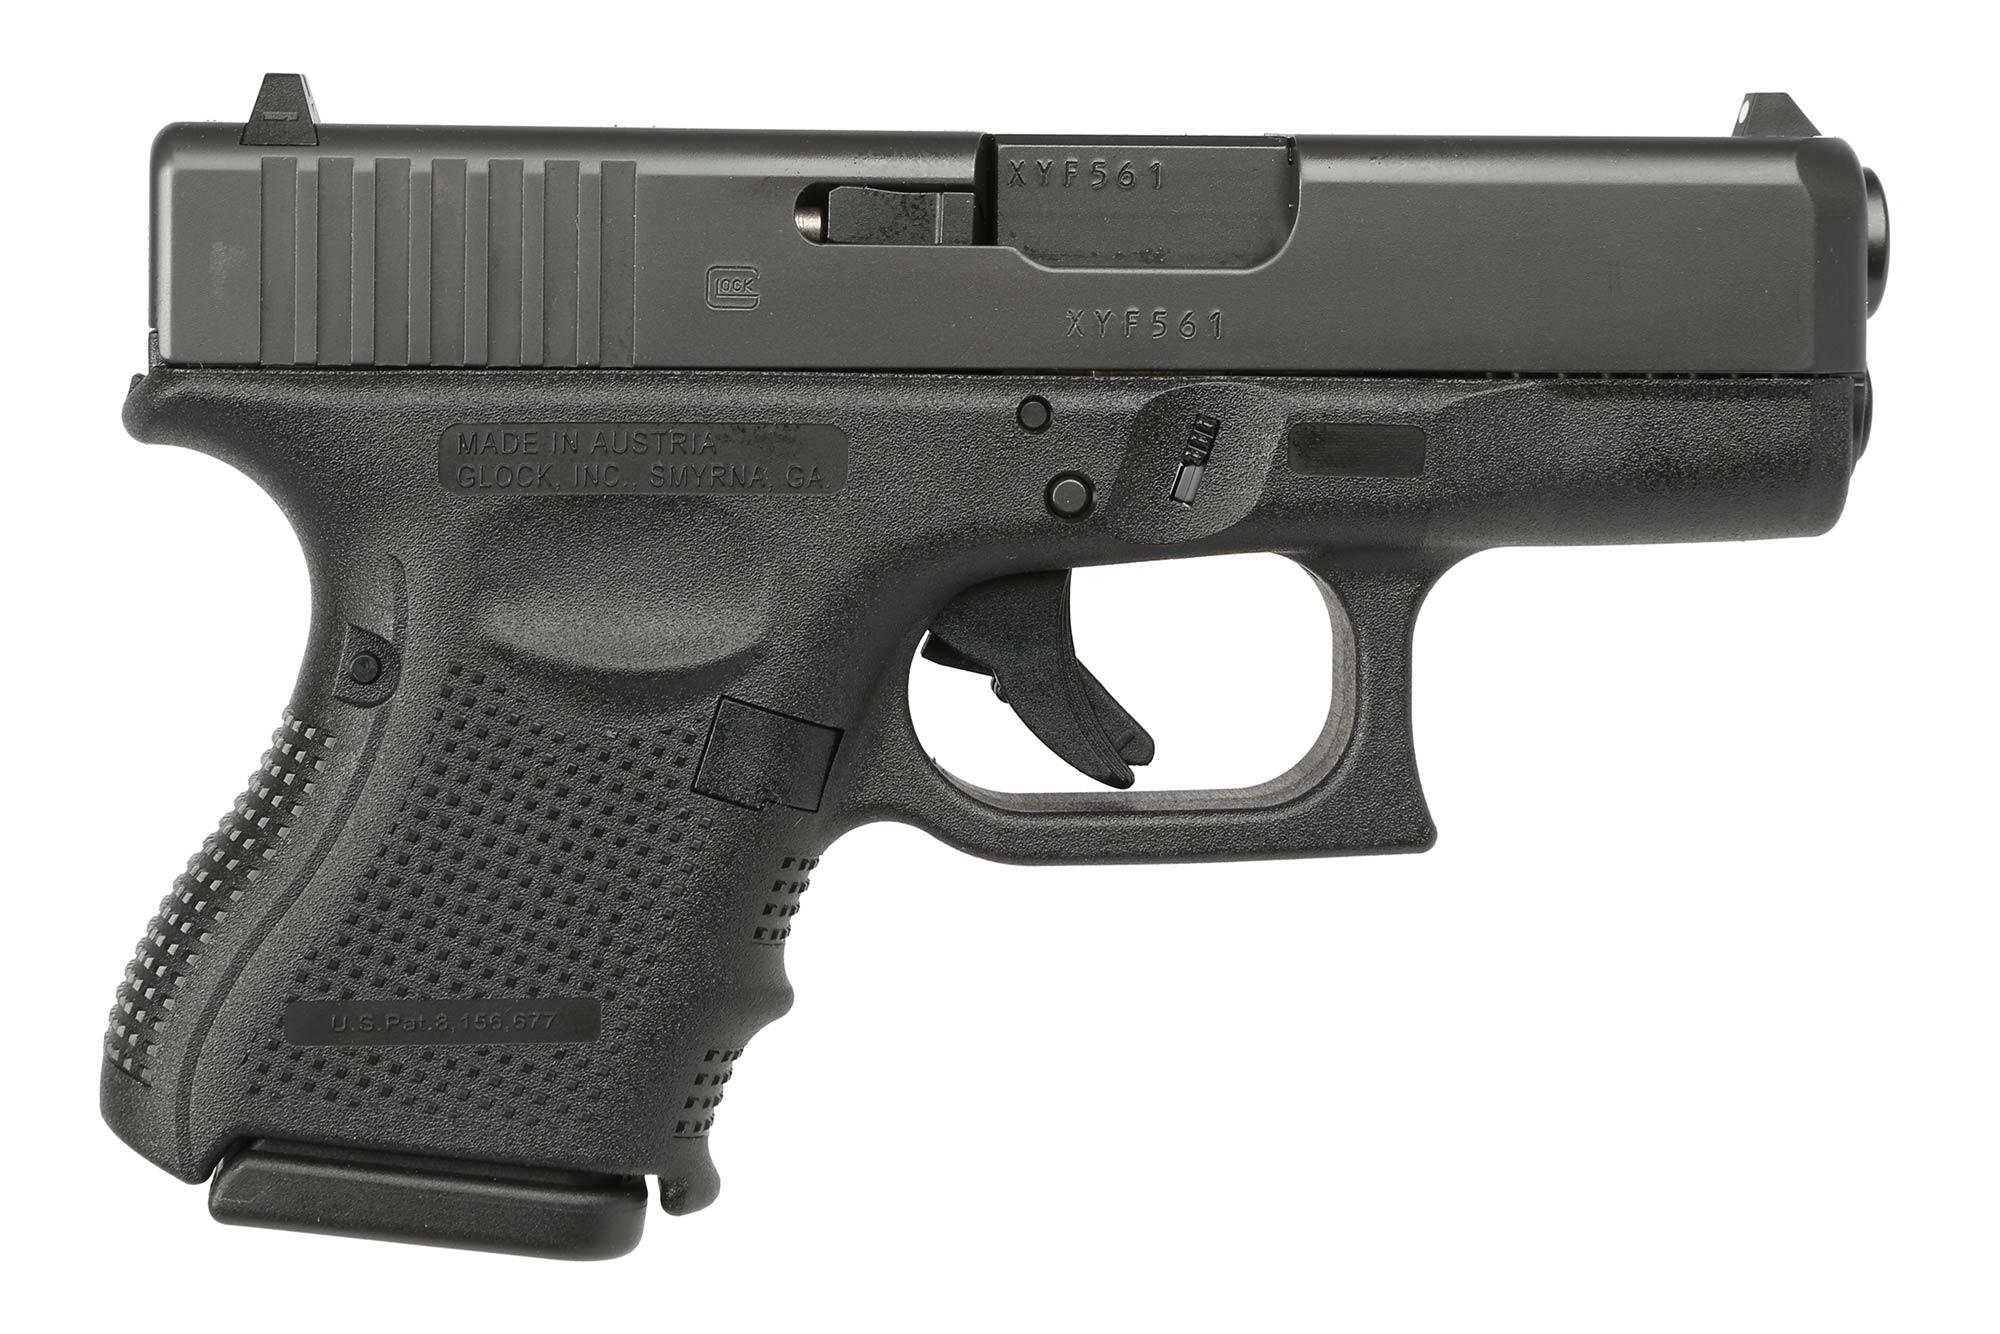 The Glock G26 Gen4 9mm Pistol features a striker fired mechanism and safe action trigger